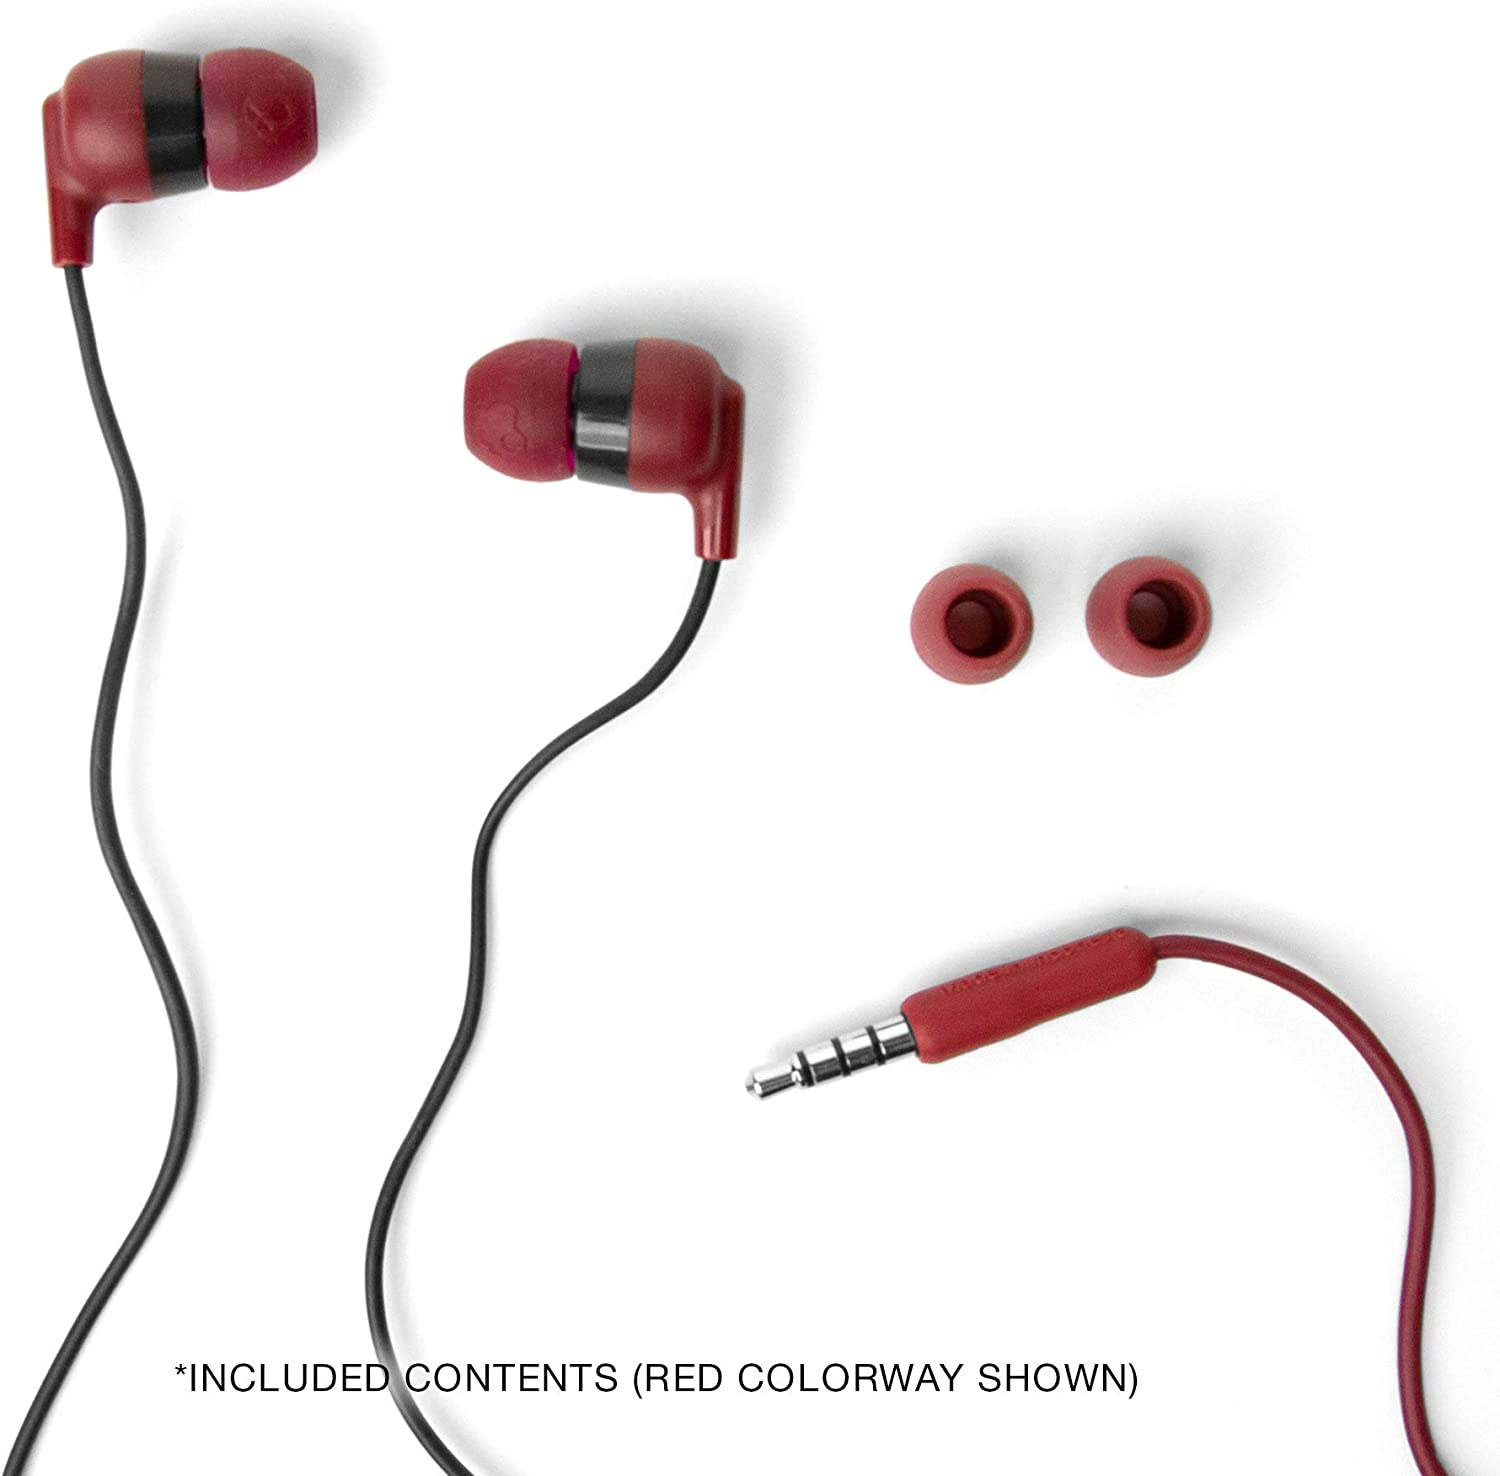 Skullcandy Ink'd+ Wired Earphones with Microphone, Moab Lavender